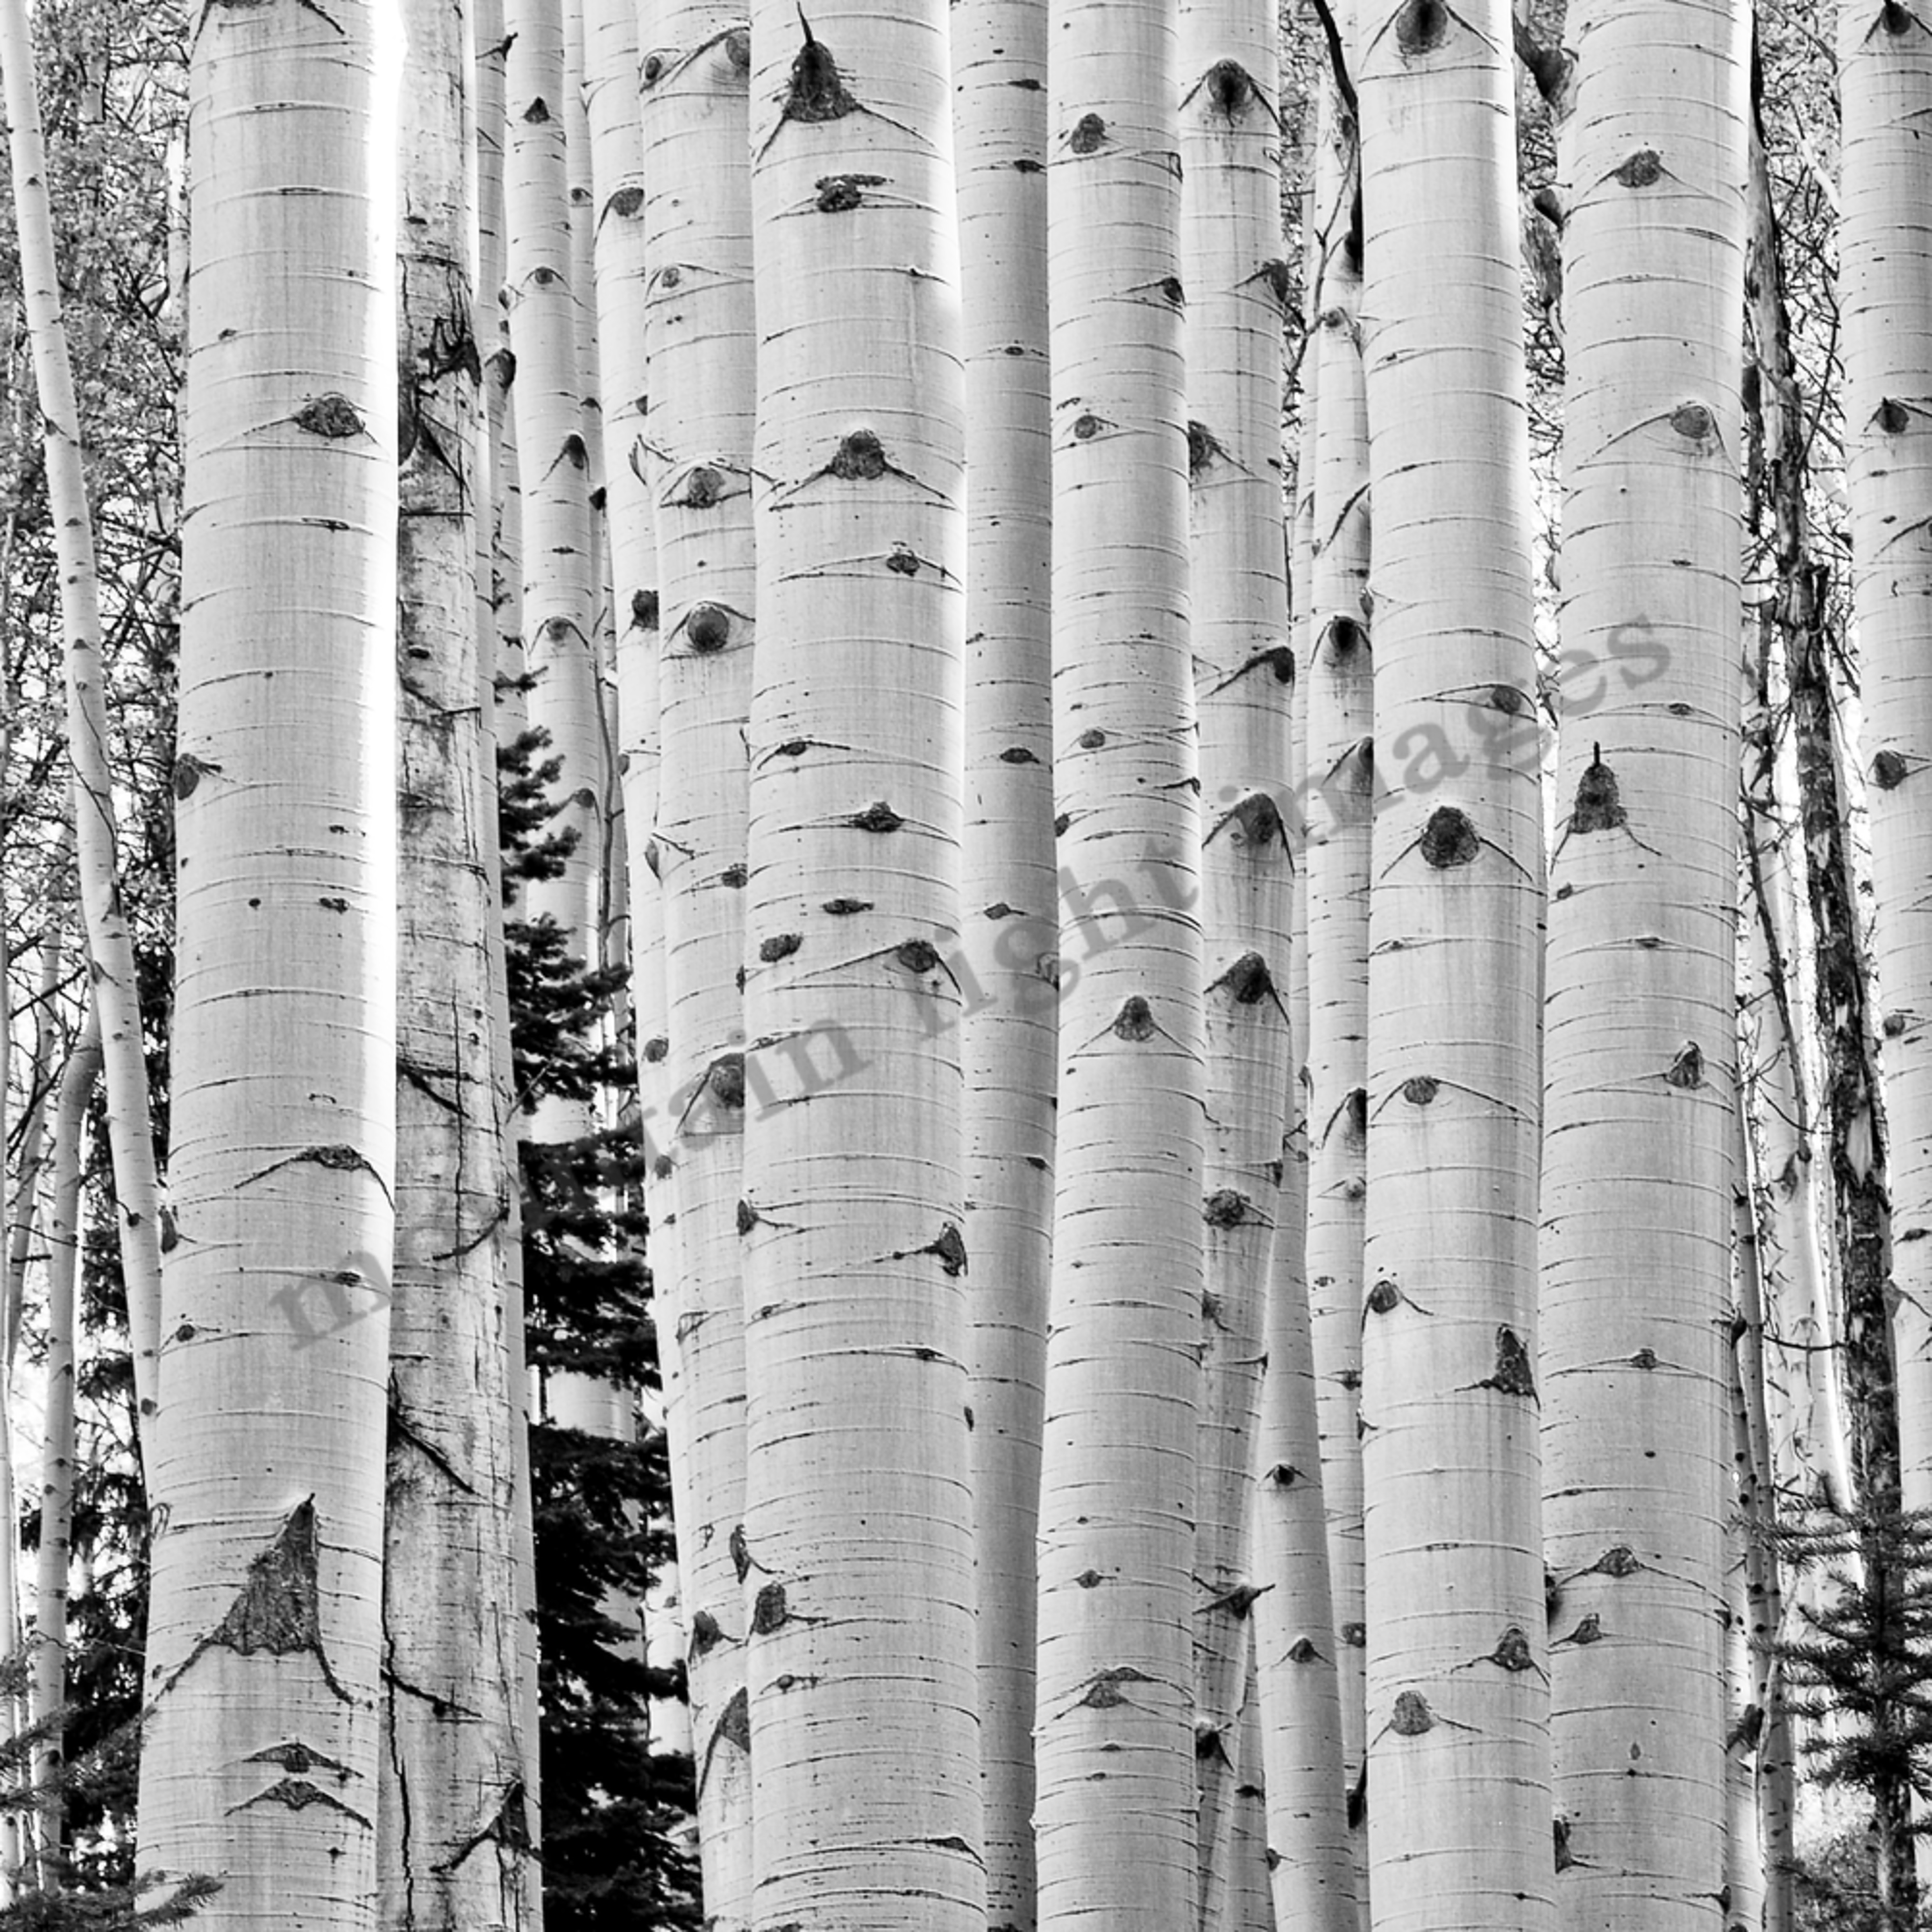 064 aspen trunks bw 36x72 j7ydhn